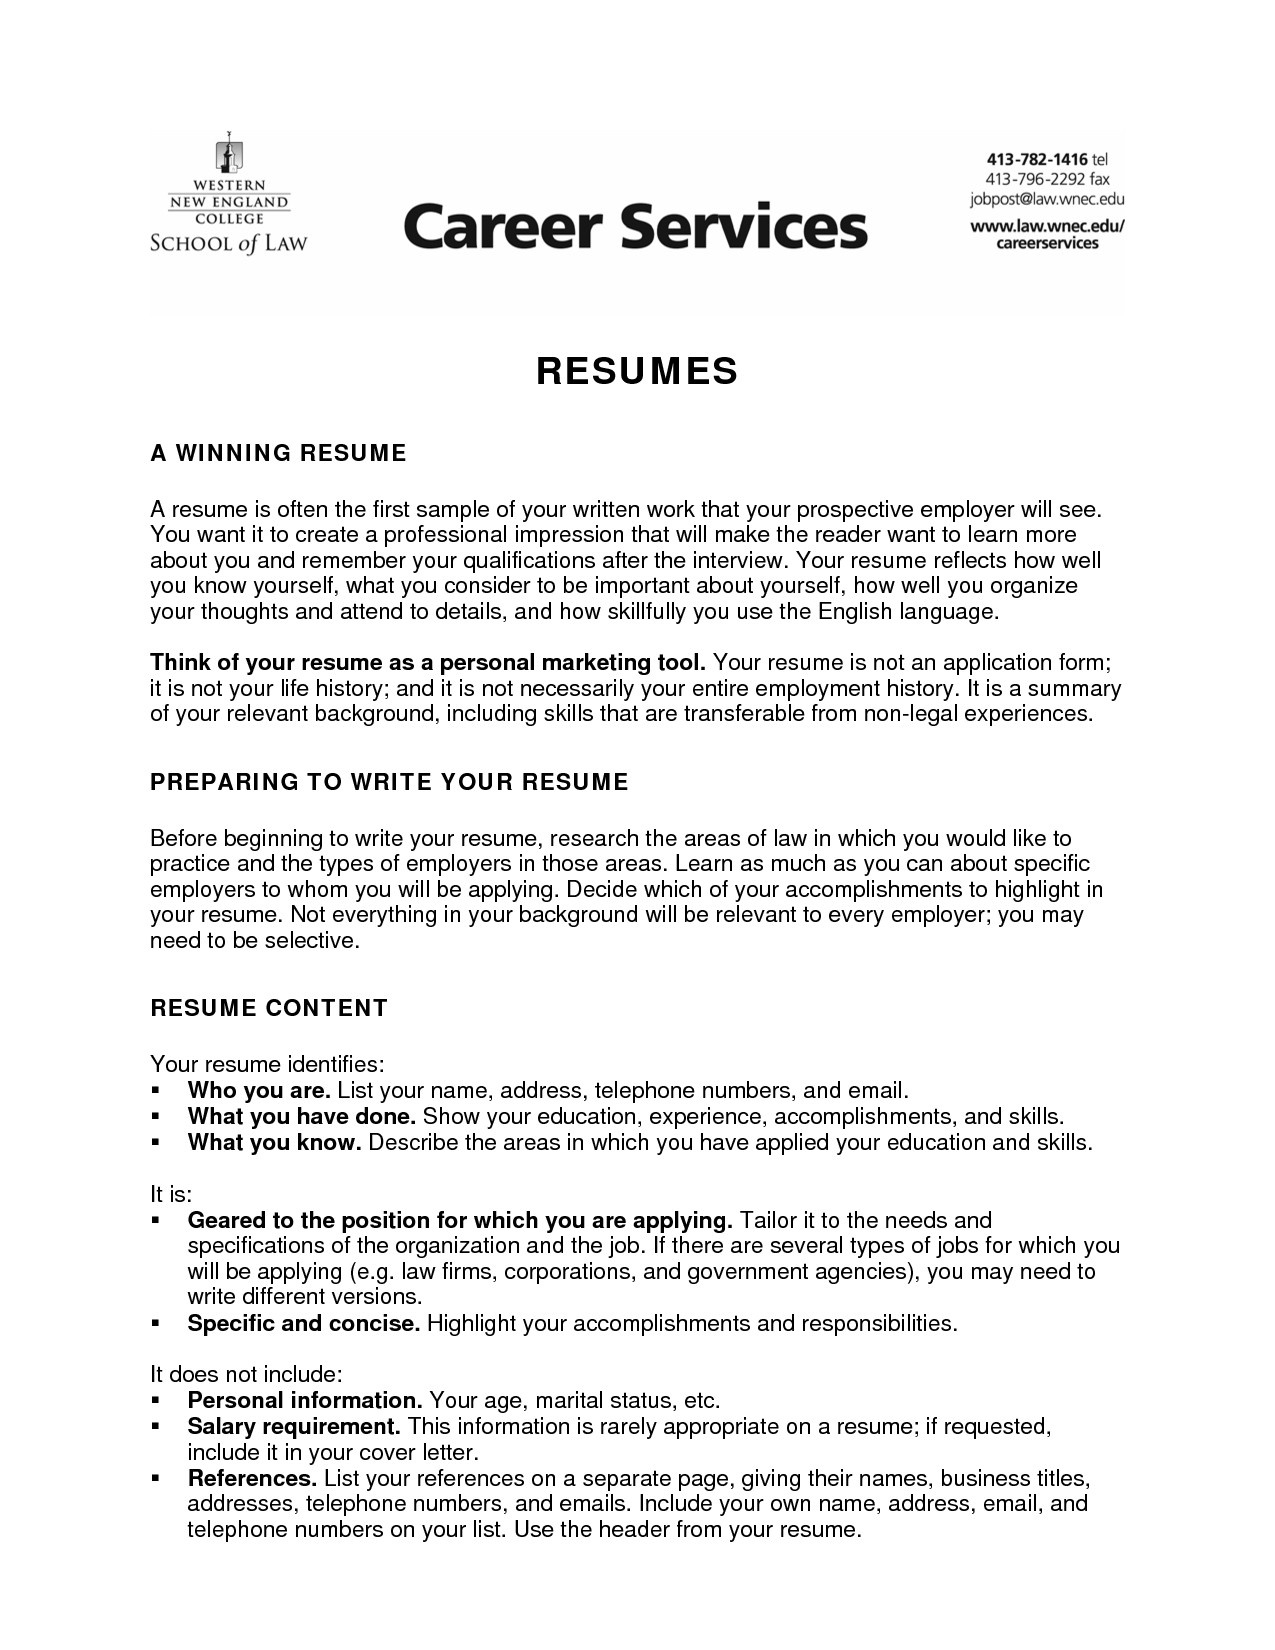 Nursing Student Resume with No Experience - Nursing Resume Objective Examples Best Elegant Good Nursing